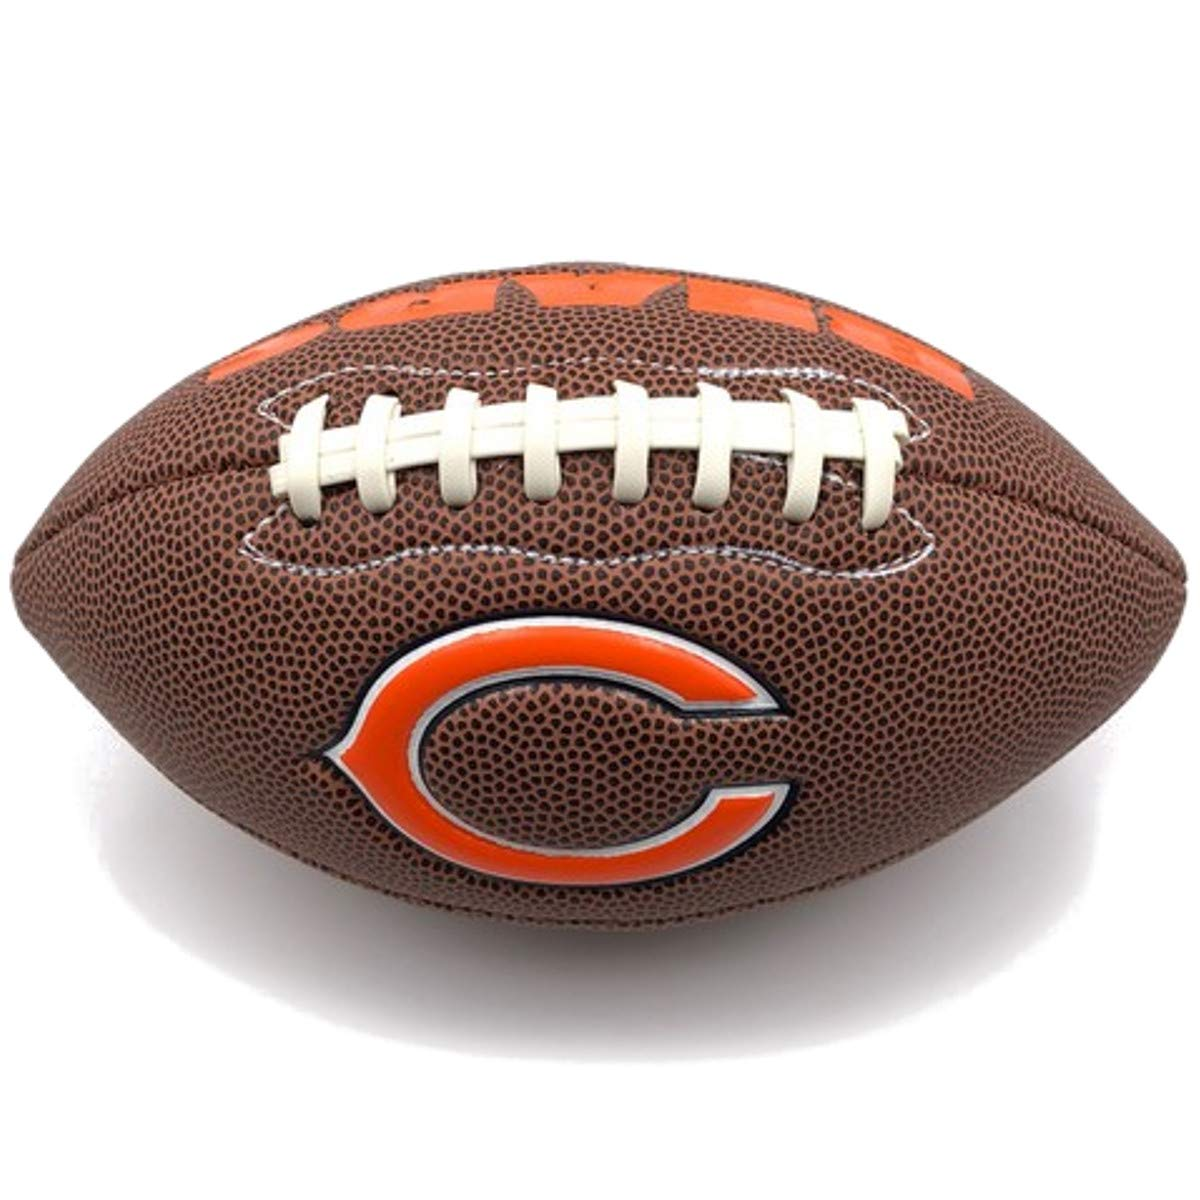 Jarden Sports Licensing Official National Football League Fan Shop Authentic NFL AIR IT Out Youth Football. Great for Pick up Game with The Kids. (Chicago Bears)